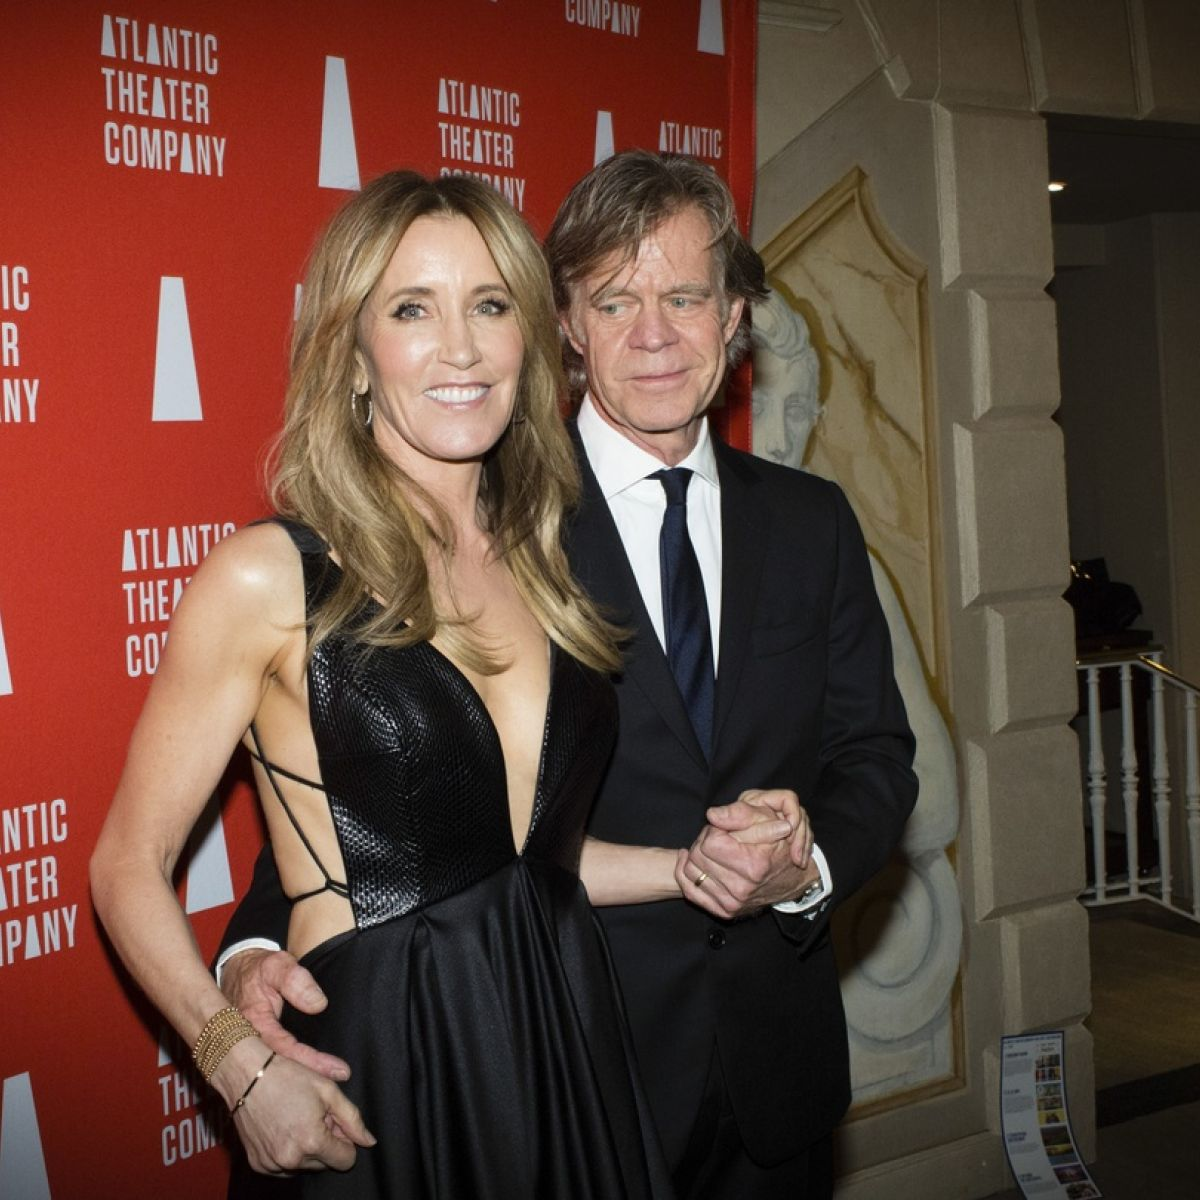 Felicity Huffman: Desperate Housewife, mother and defendant